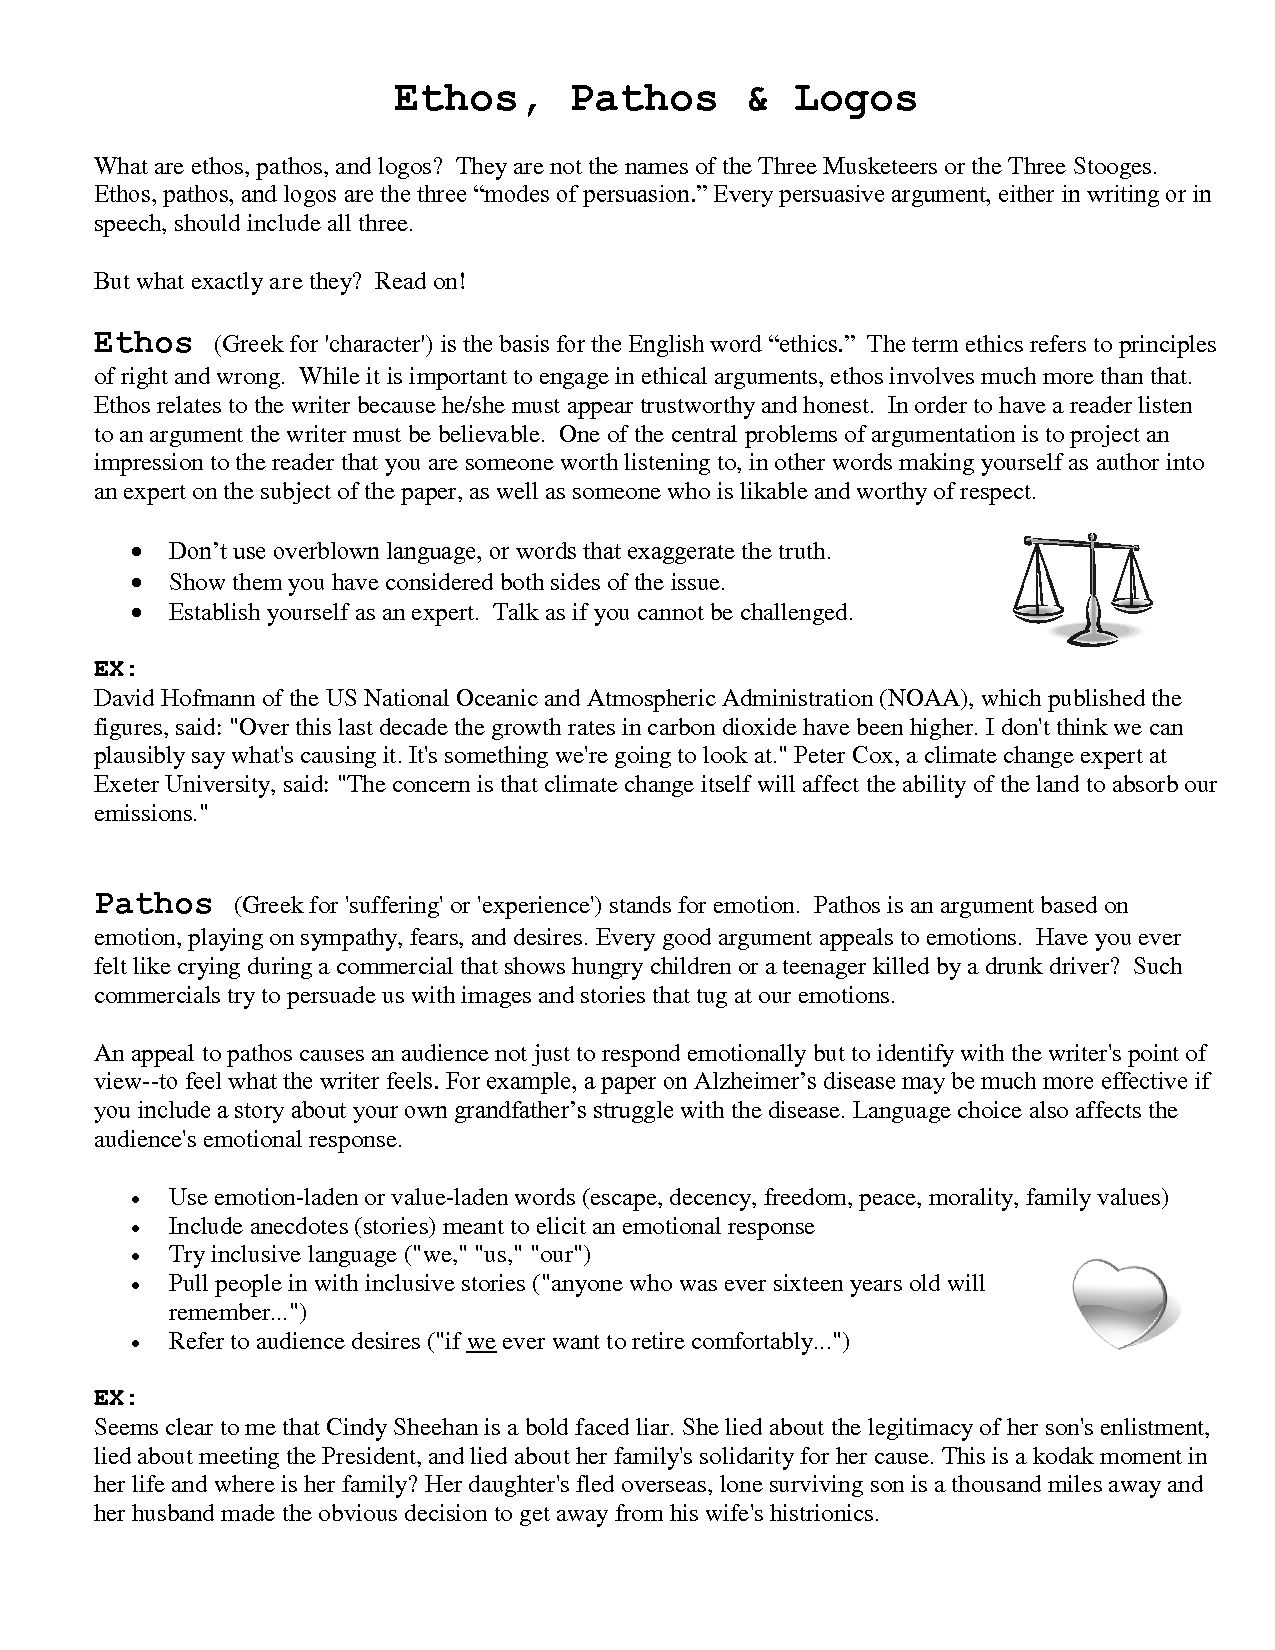 Worksheets Ethos Logos Pathos Worksheet ethos pathos logos for school pinterest teaching and logos